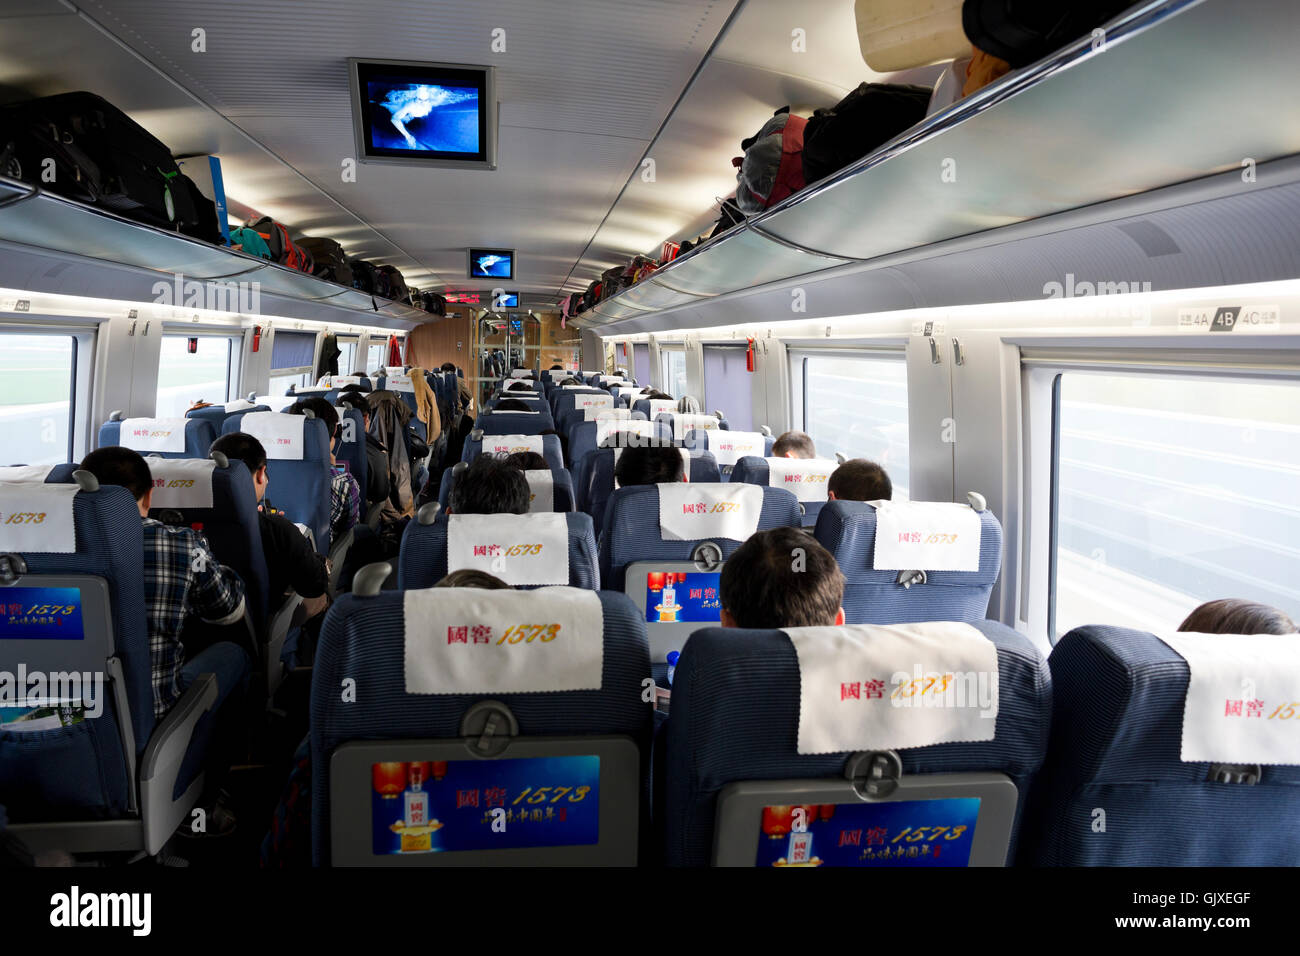 High-speed rail car interior - Stock Image